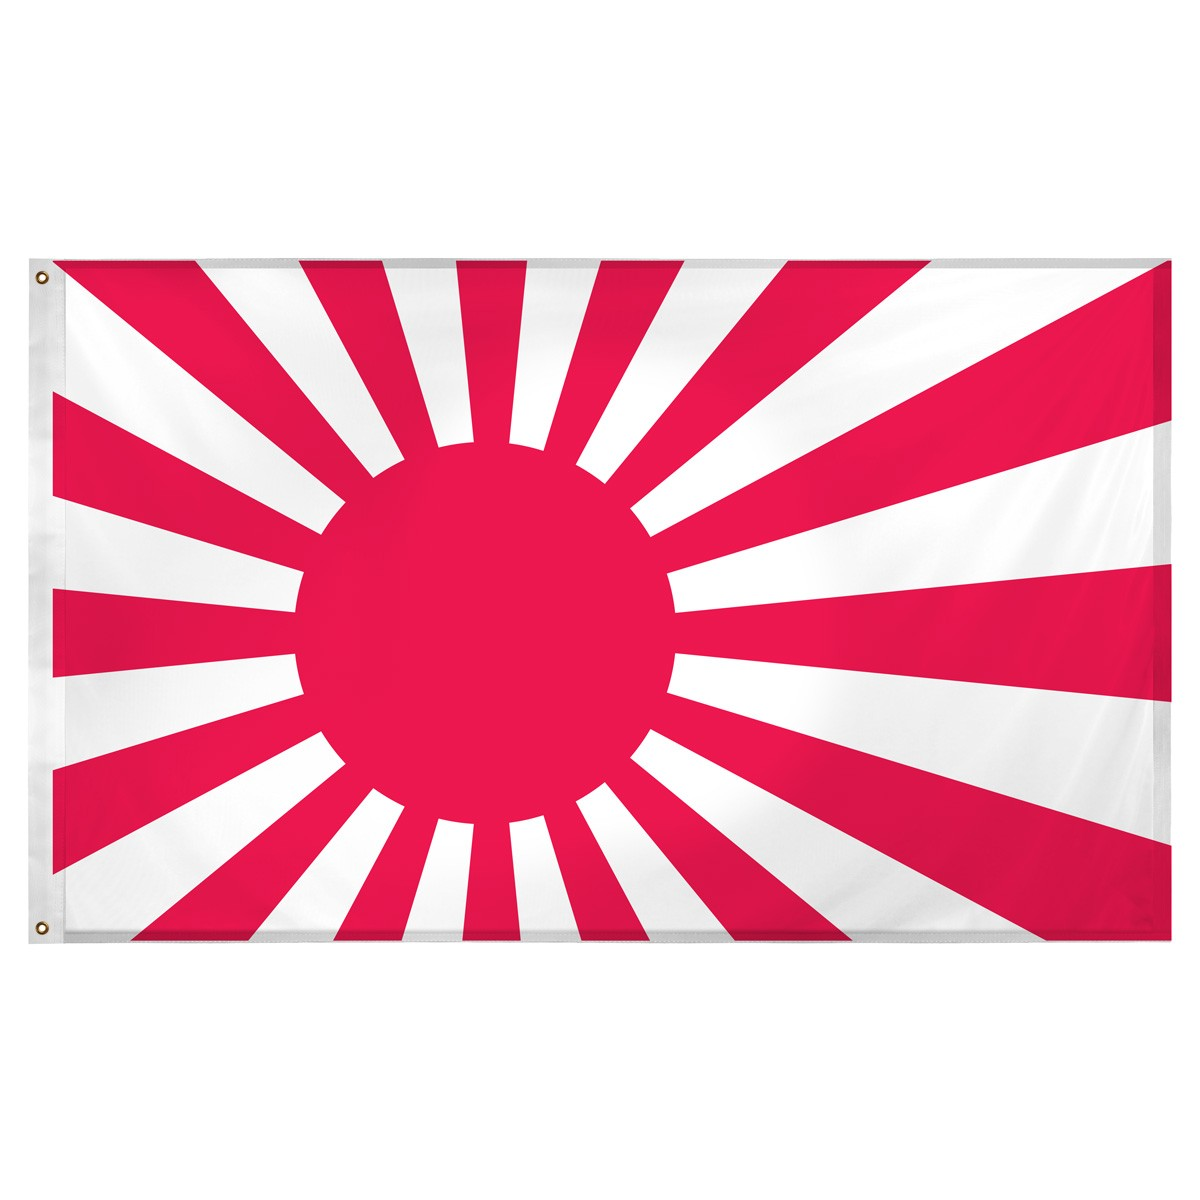 Free Japan Flag Images: AI, EPS, GIF, , PDF, PNG, and SVG